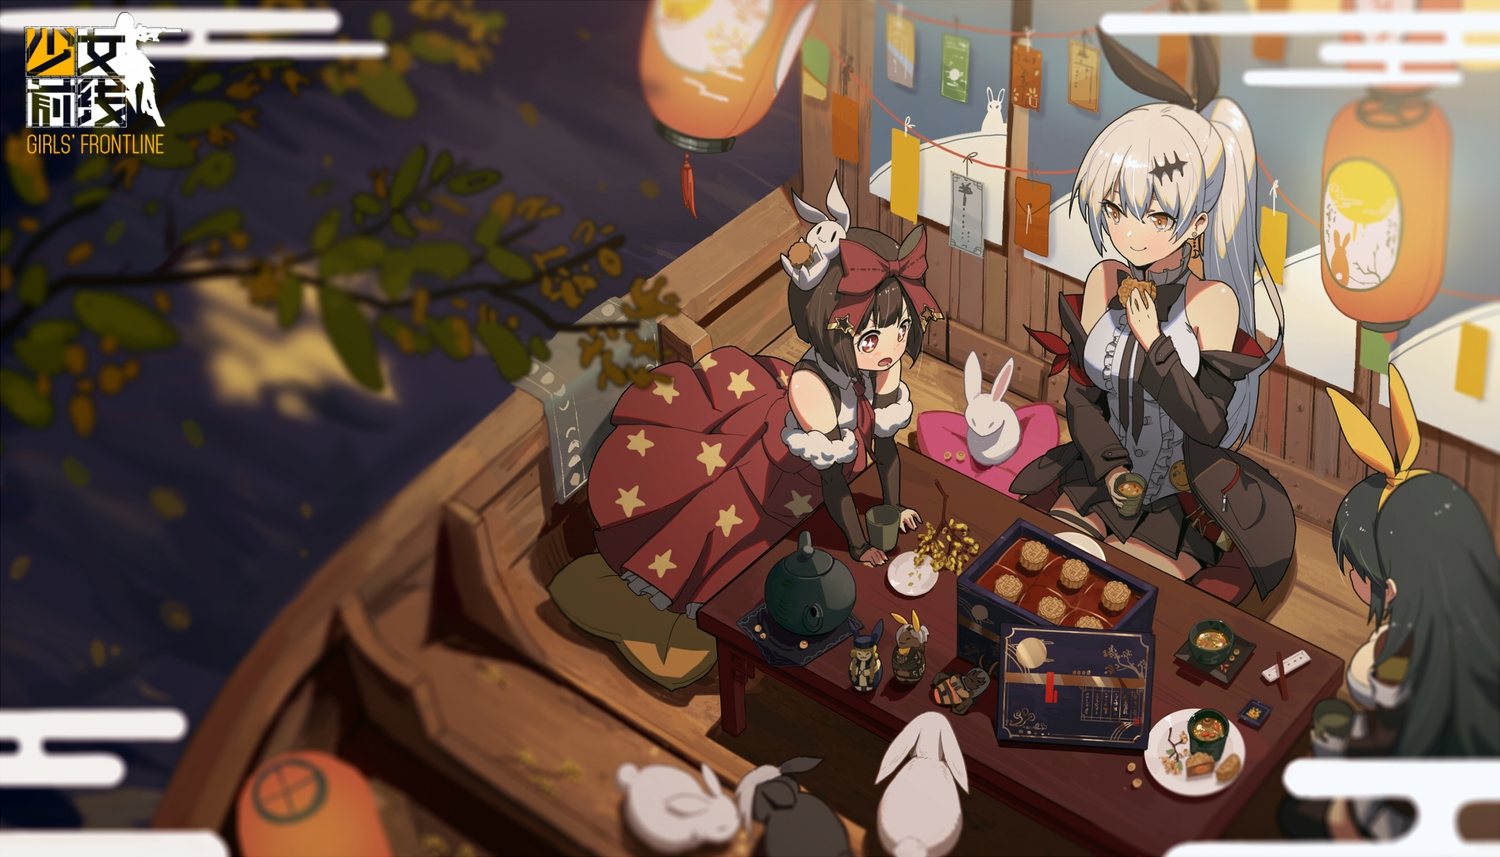 animal anthropomorphism black_hair boat brown_hair cetme_ameli_(girls_frontline) doll dress drink five_seven_(girls_frontline) food girls_frontline gray_hair headband logo long_hair m99_(girls_frontline) orange_eyes ponytail rabbit red_eyes short_hair skirt tagme_(artist) water